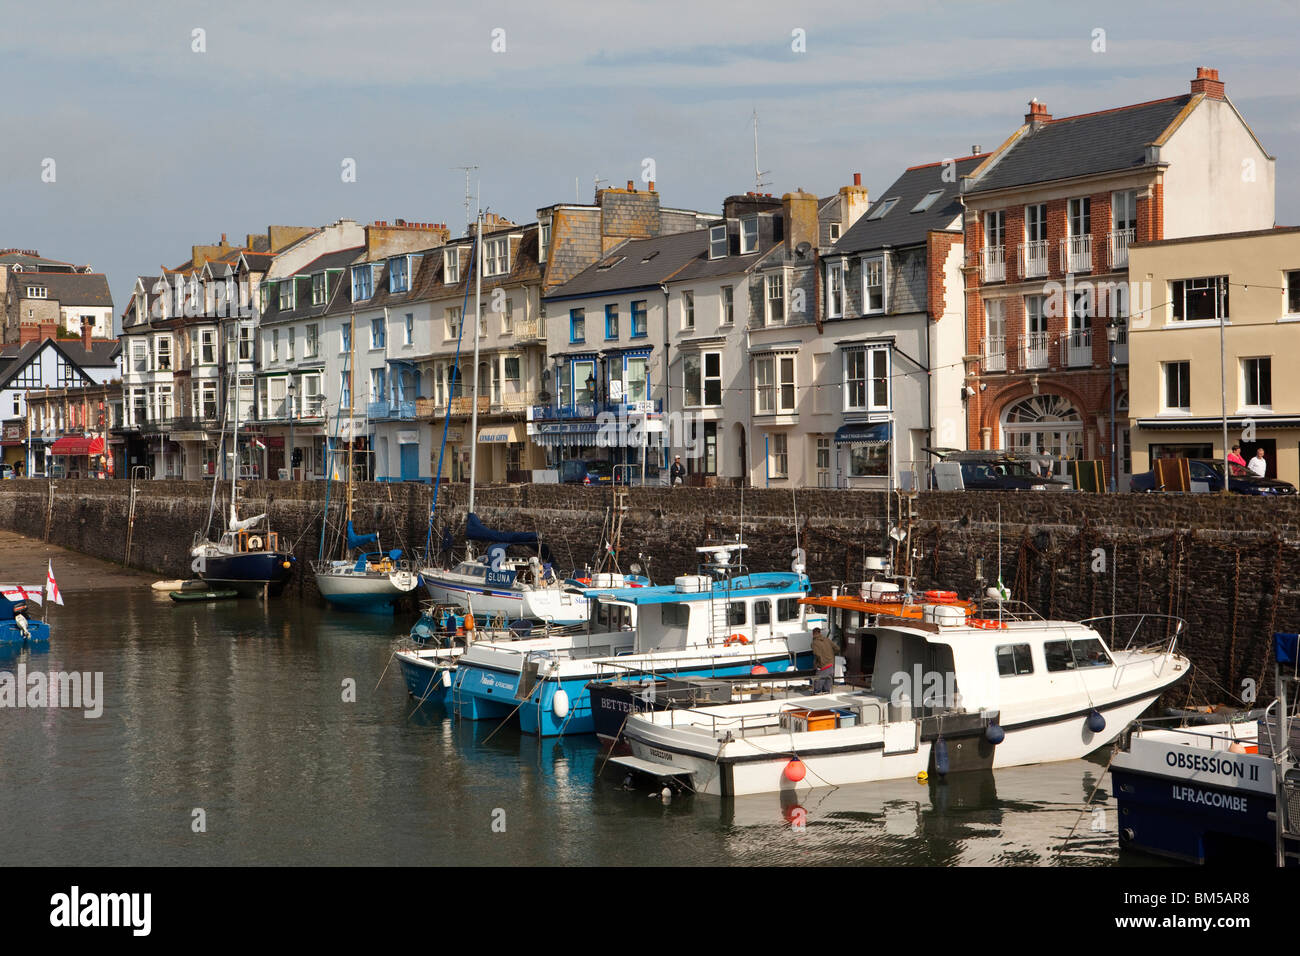 UK, England, Devon, Ilfracombe, harbour, tall houses along the Quay - Stock Image